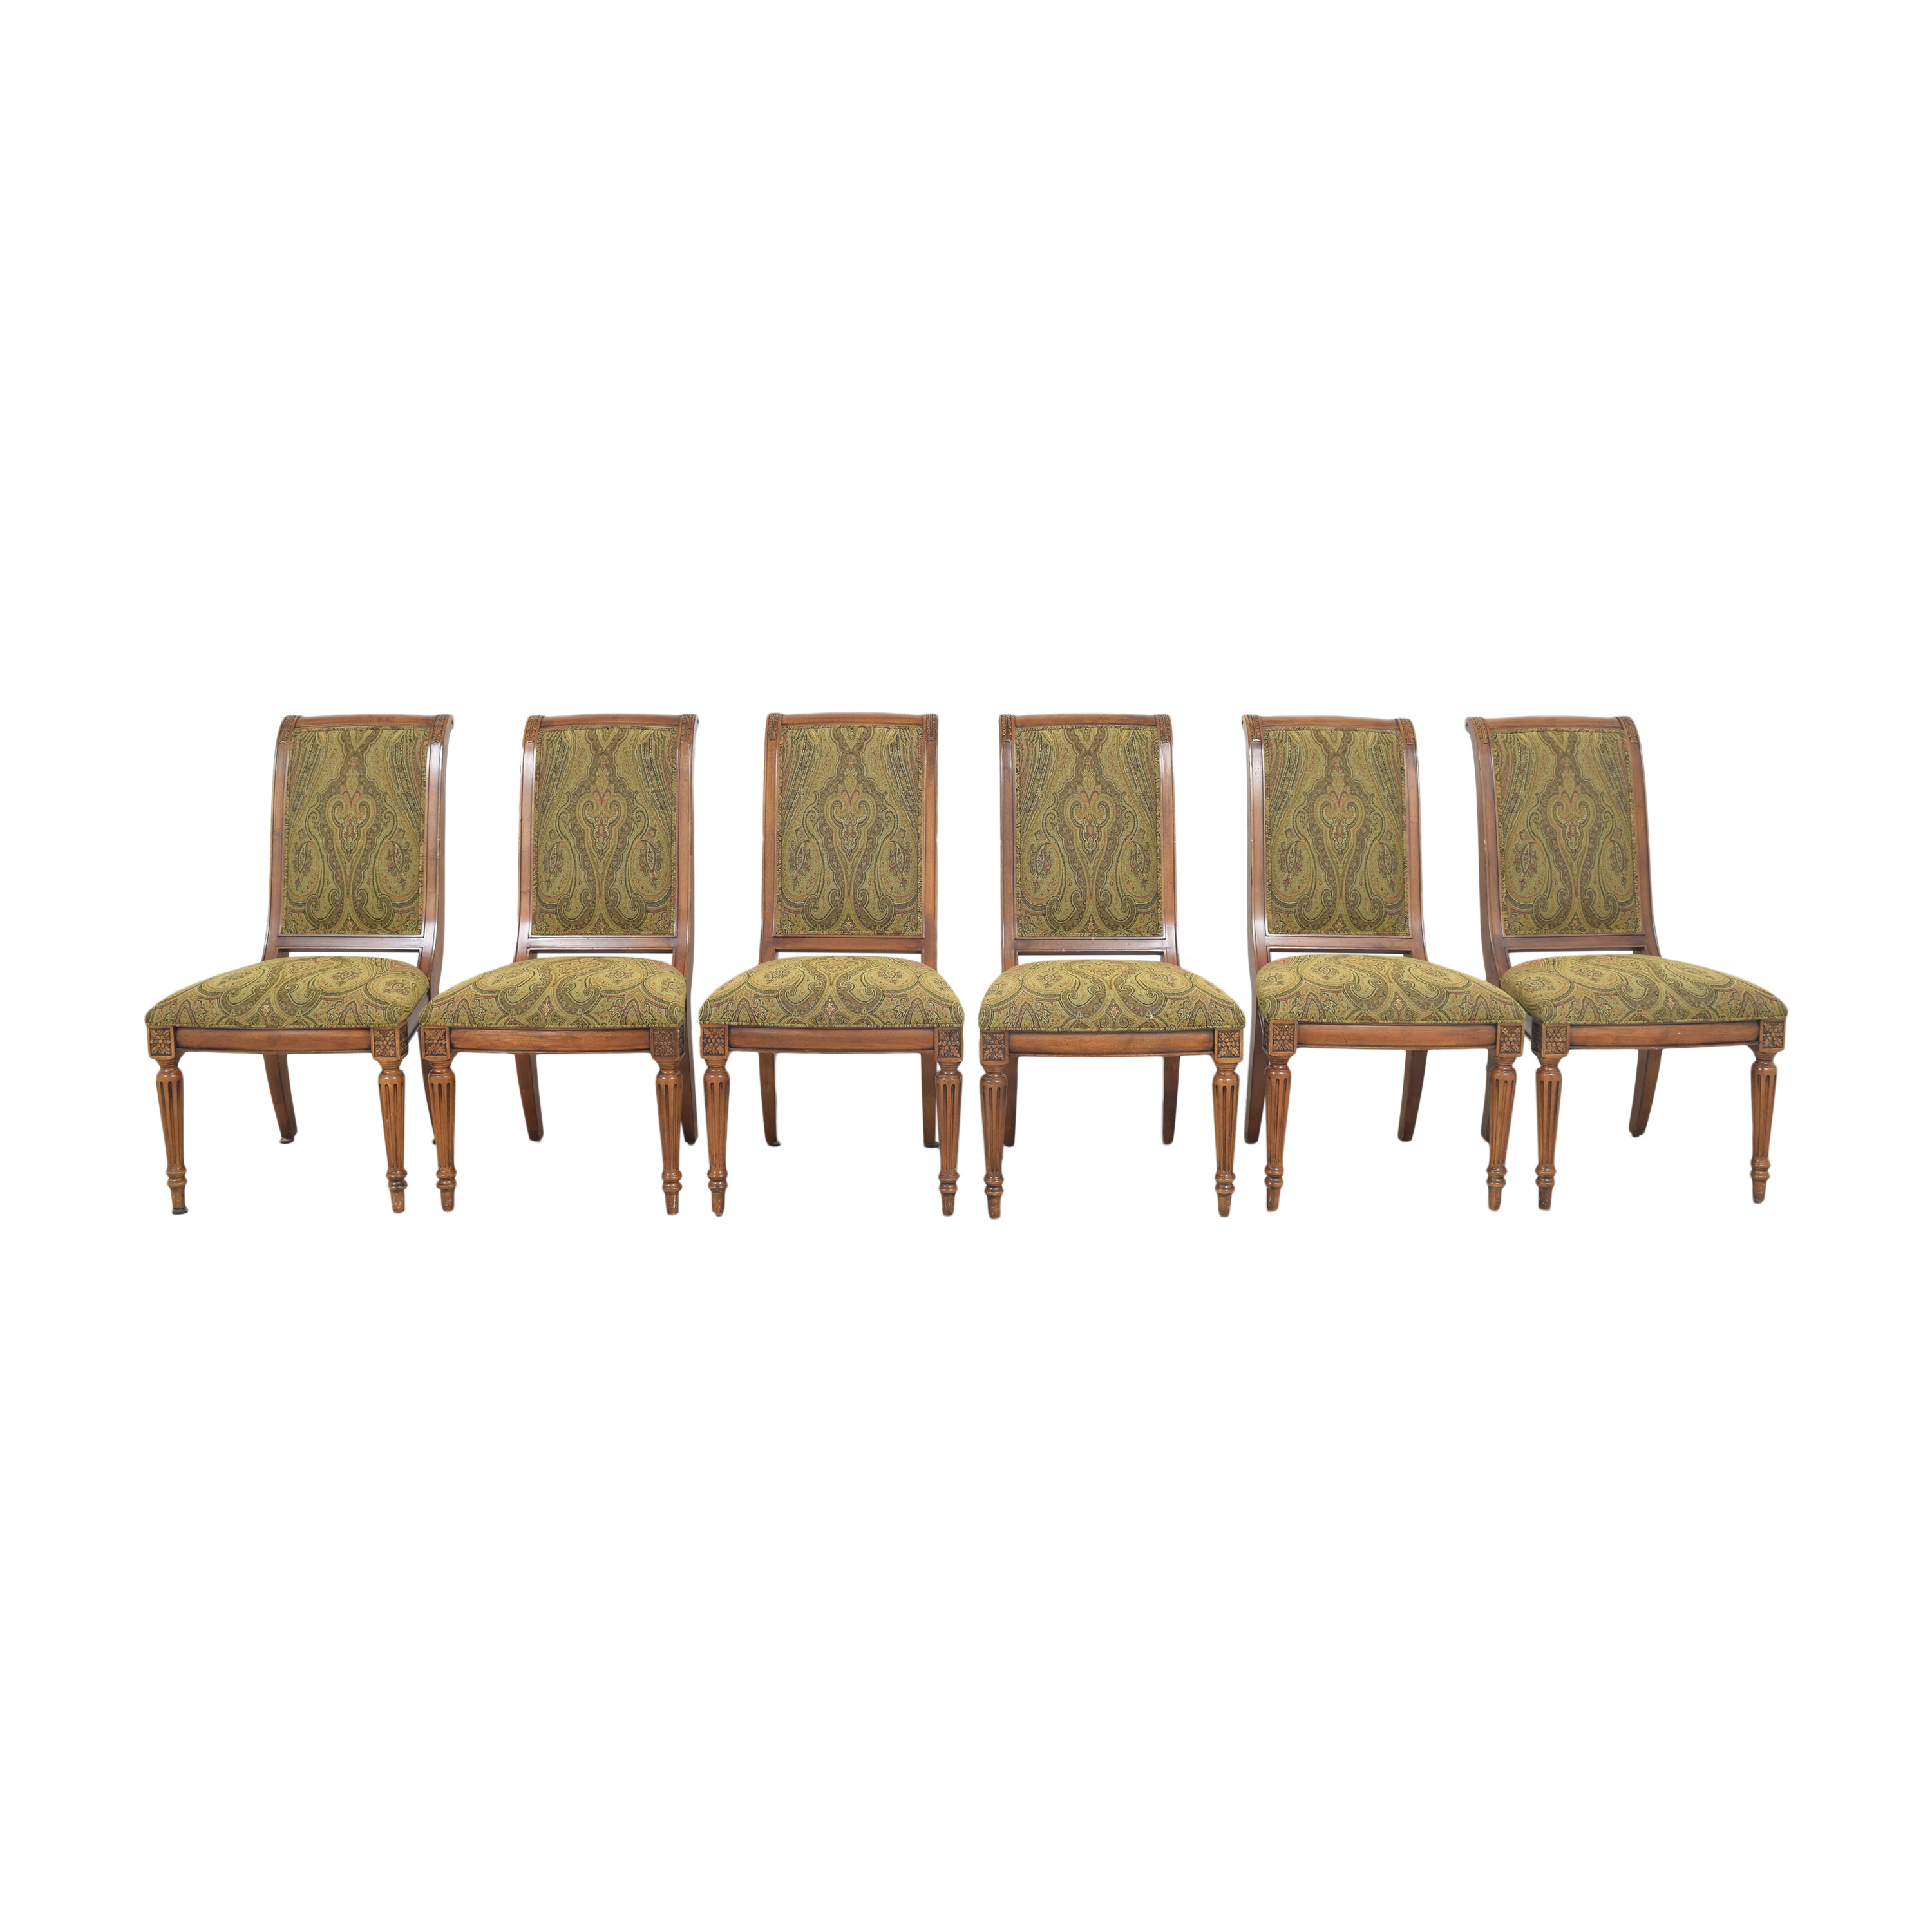 Ethan Allen Adison Dining Side Chairs sale